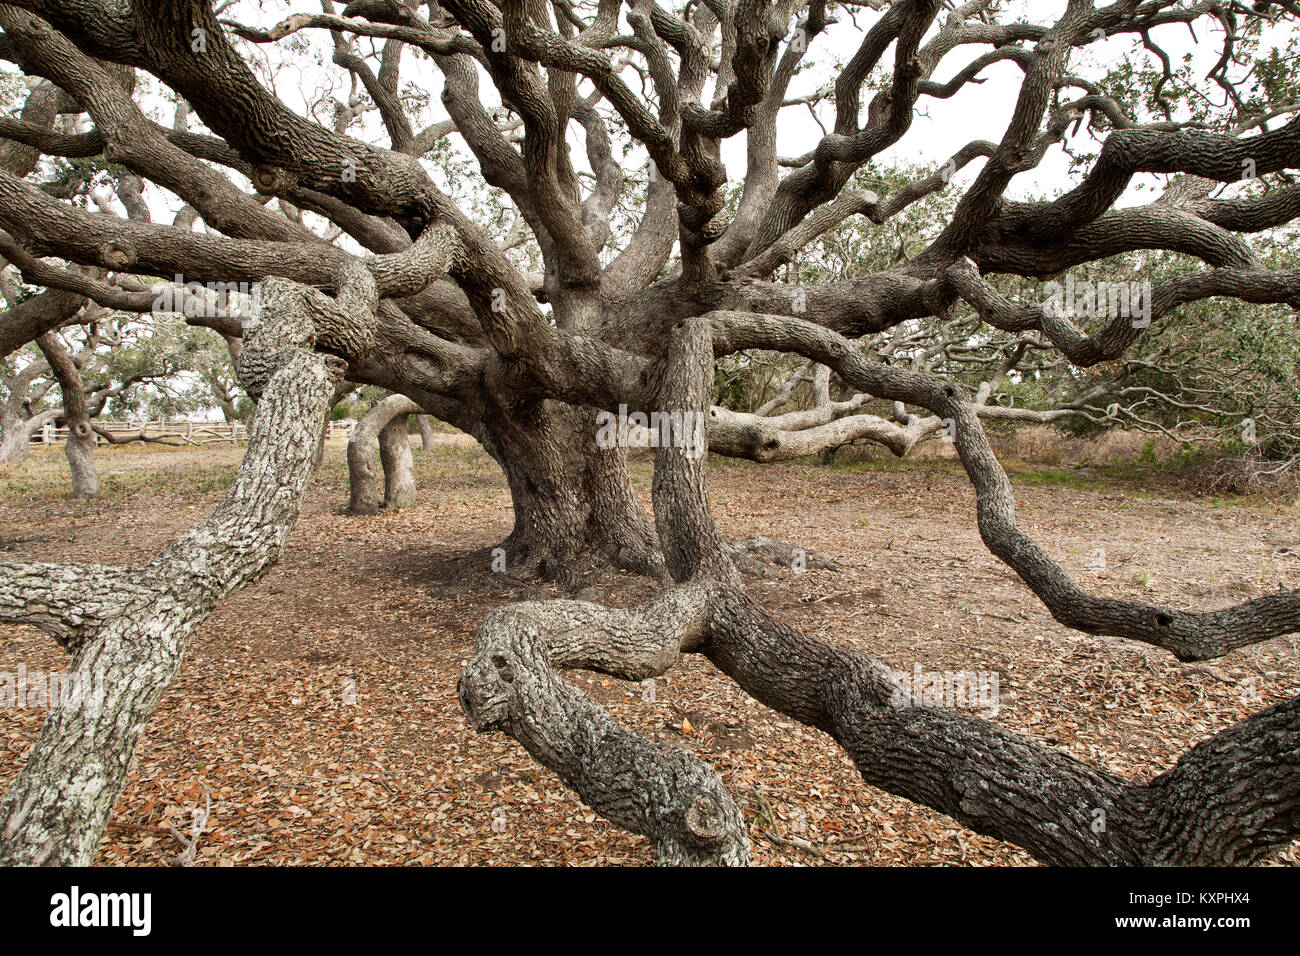 Southern Live Oak tree  'Quercus virginiana',  reaching branches. - Stock Image